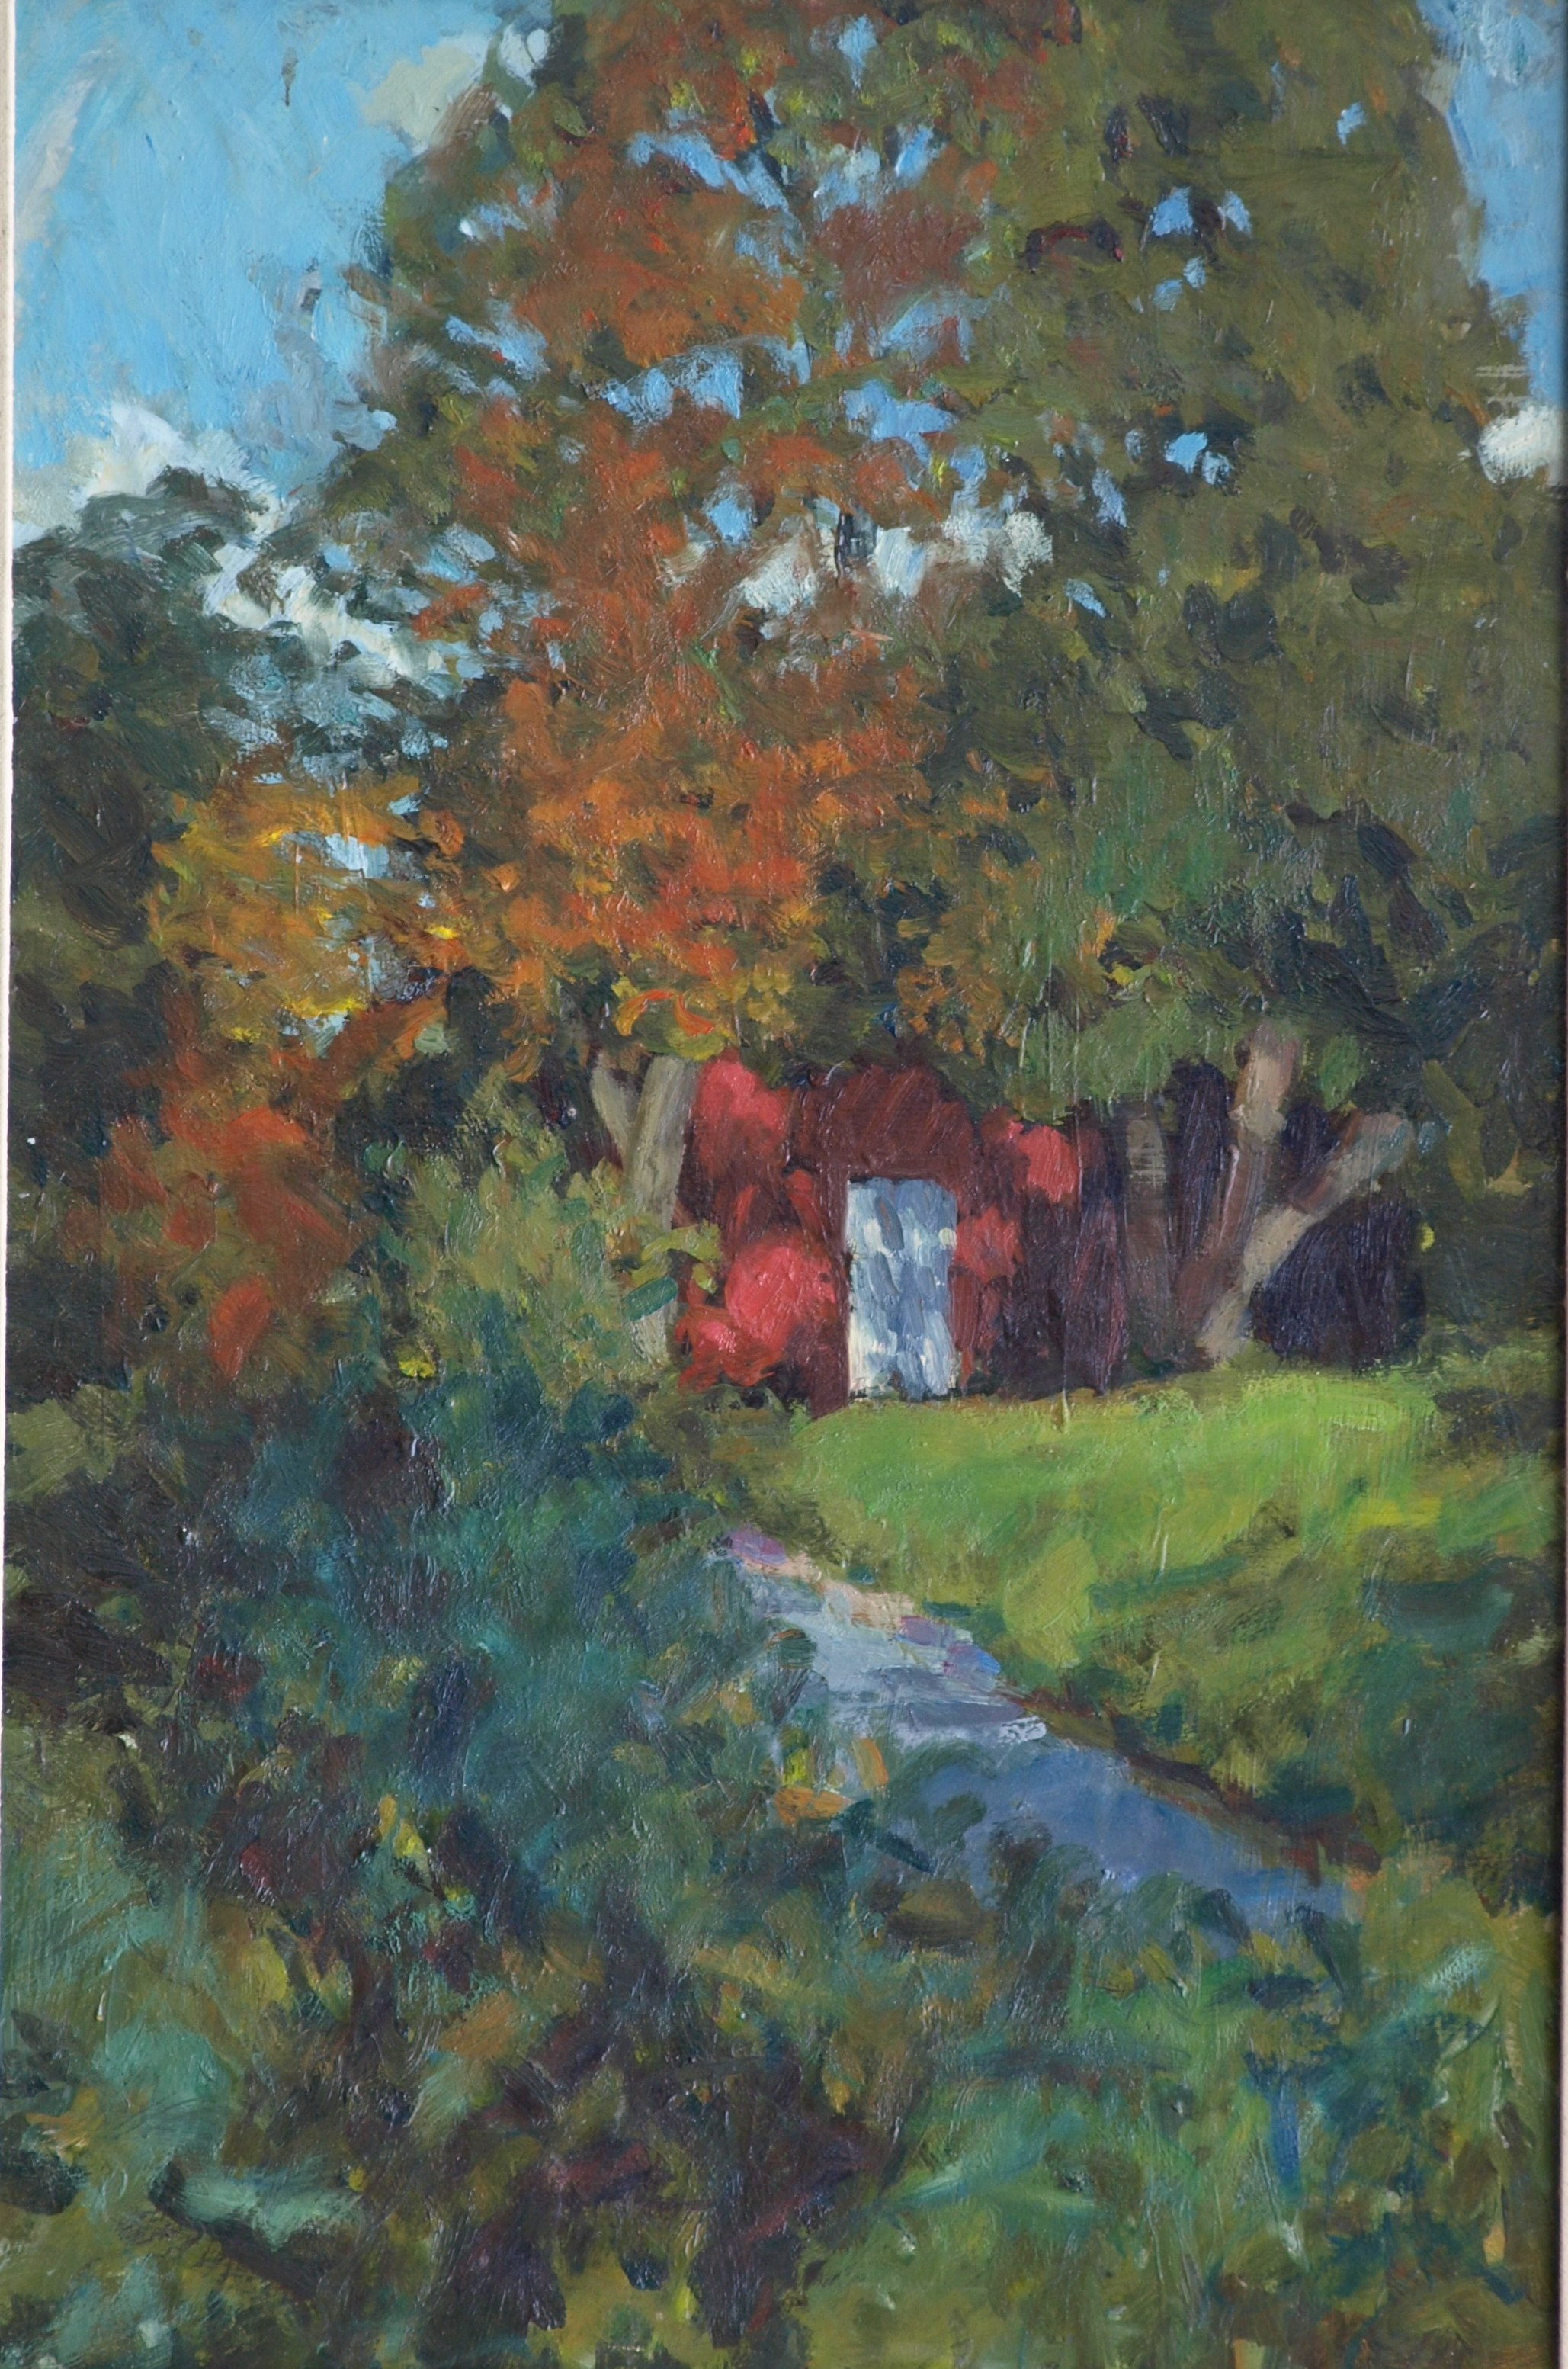 Hattie's Barn, Oil on Canvas, 16 x 24 Inches, by Bernard Lennon, $650